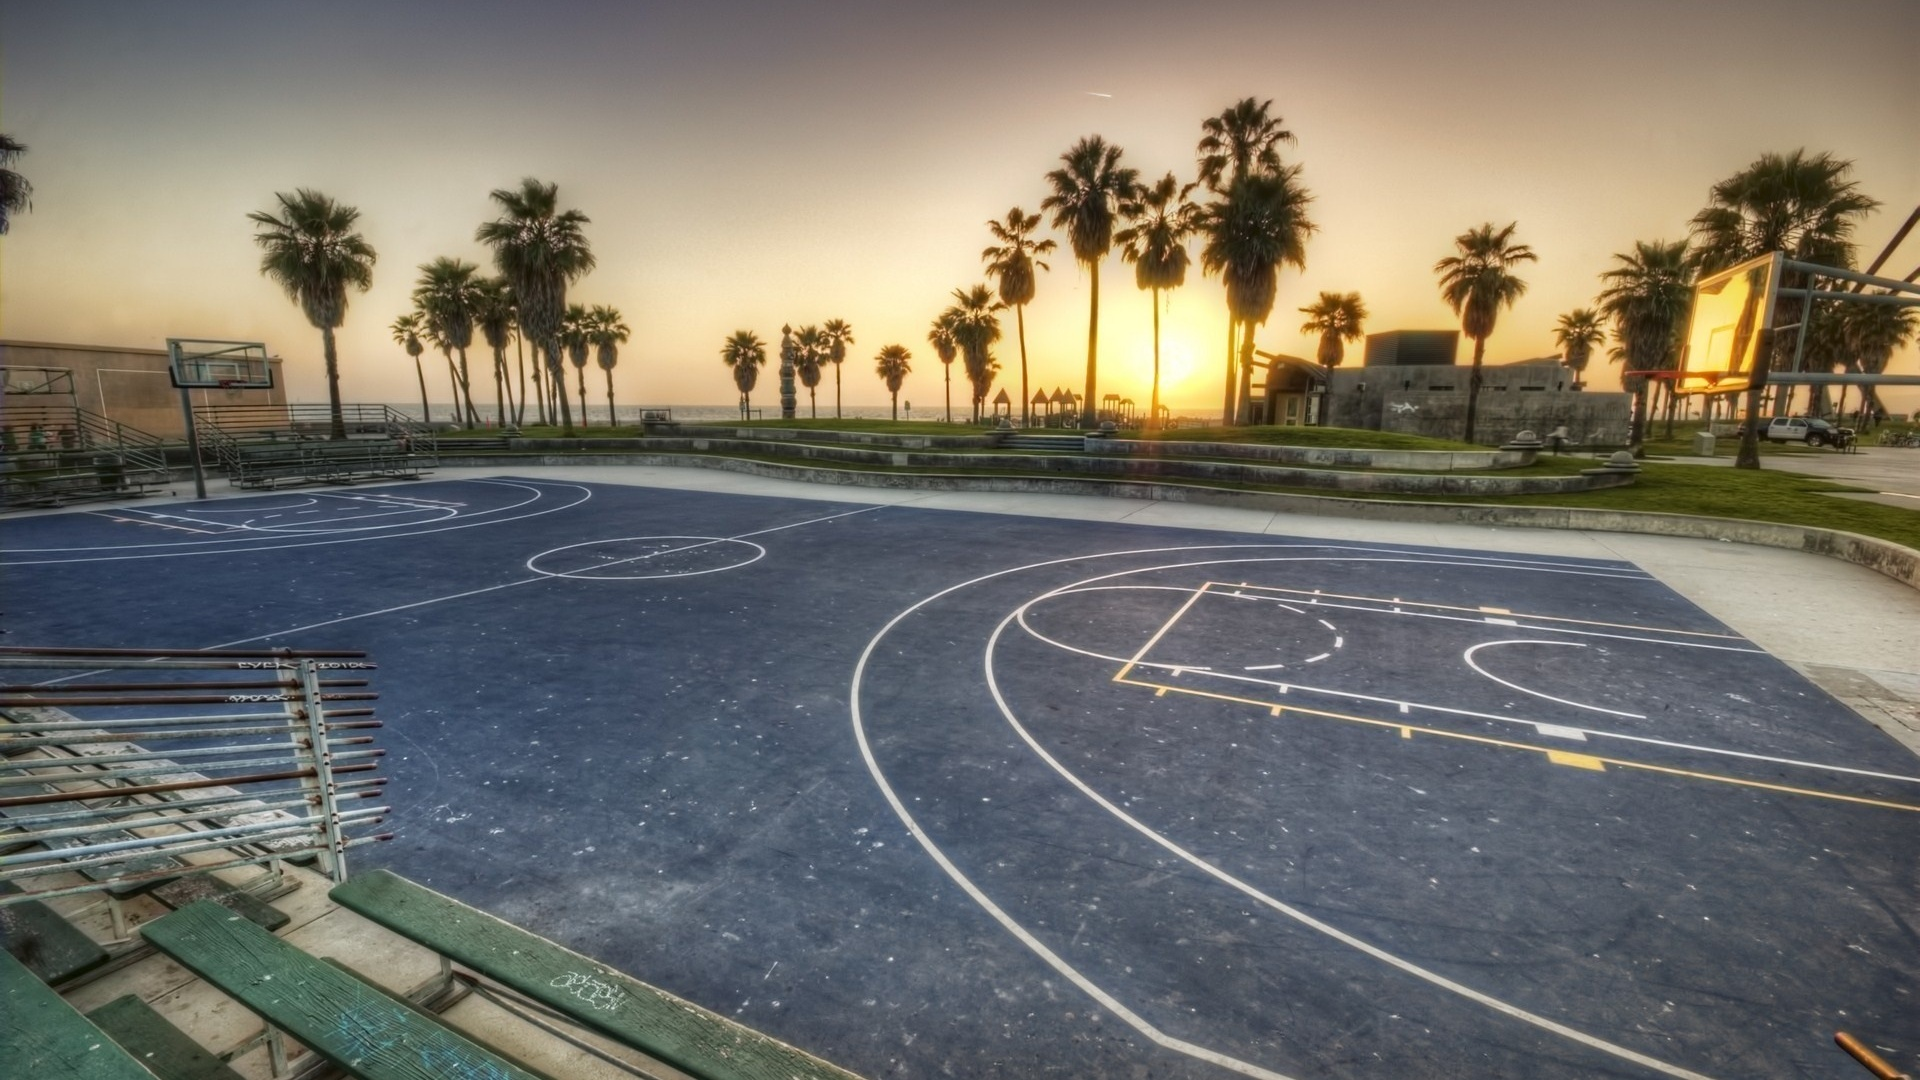 Download 1920x1080 La Sunset Los Angeles California Basketball 1920x1080